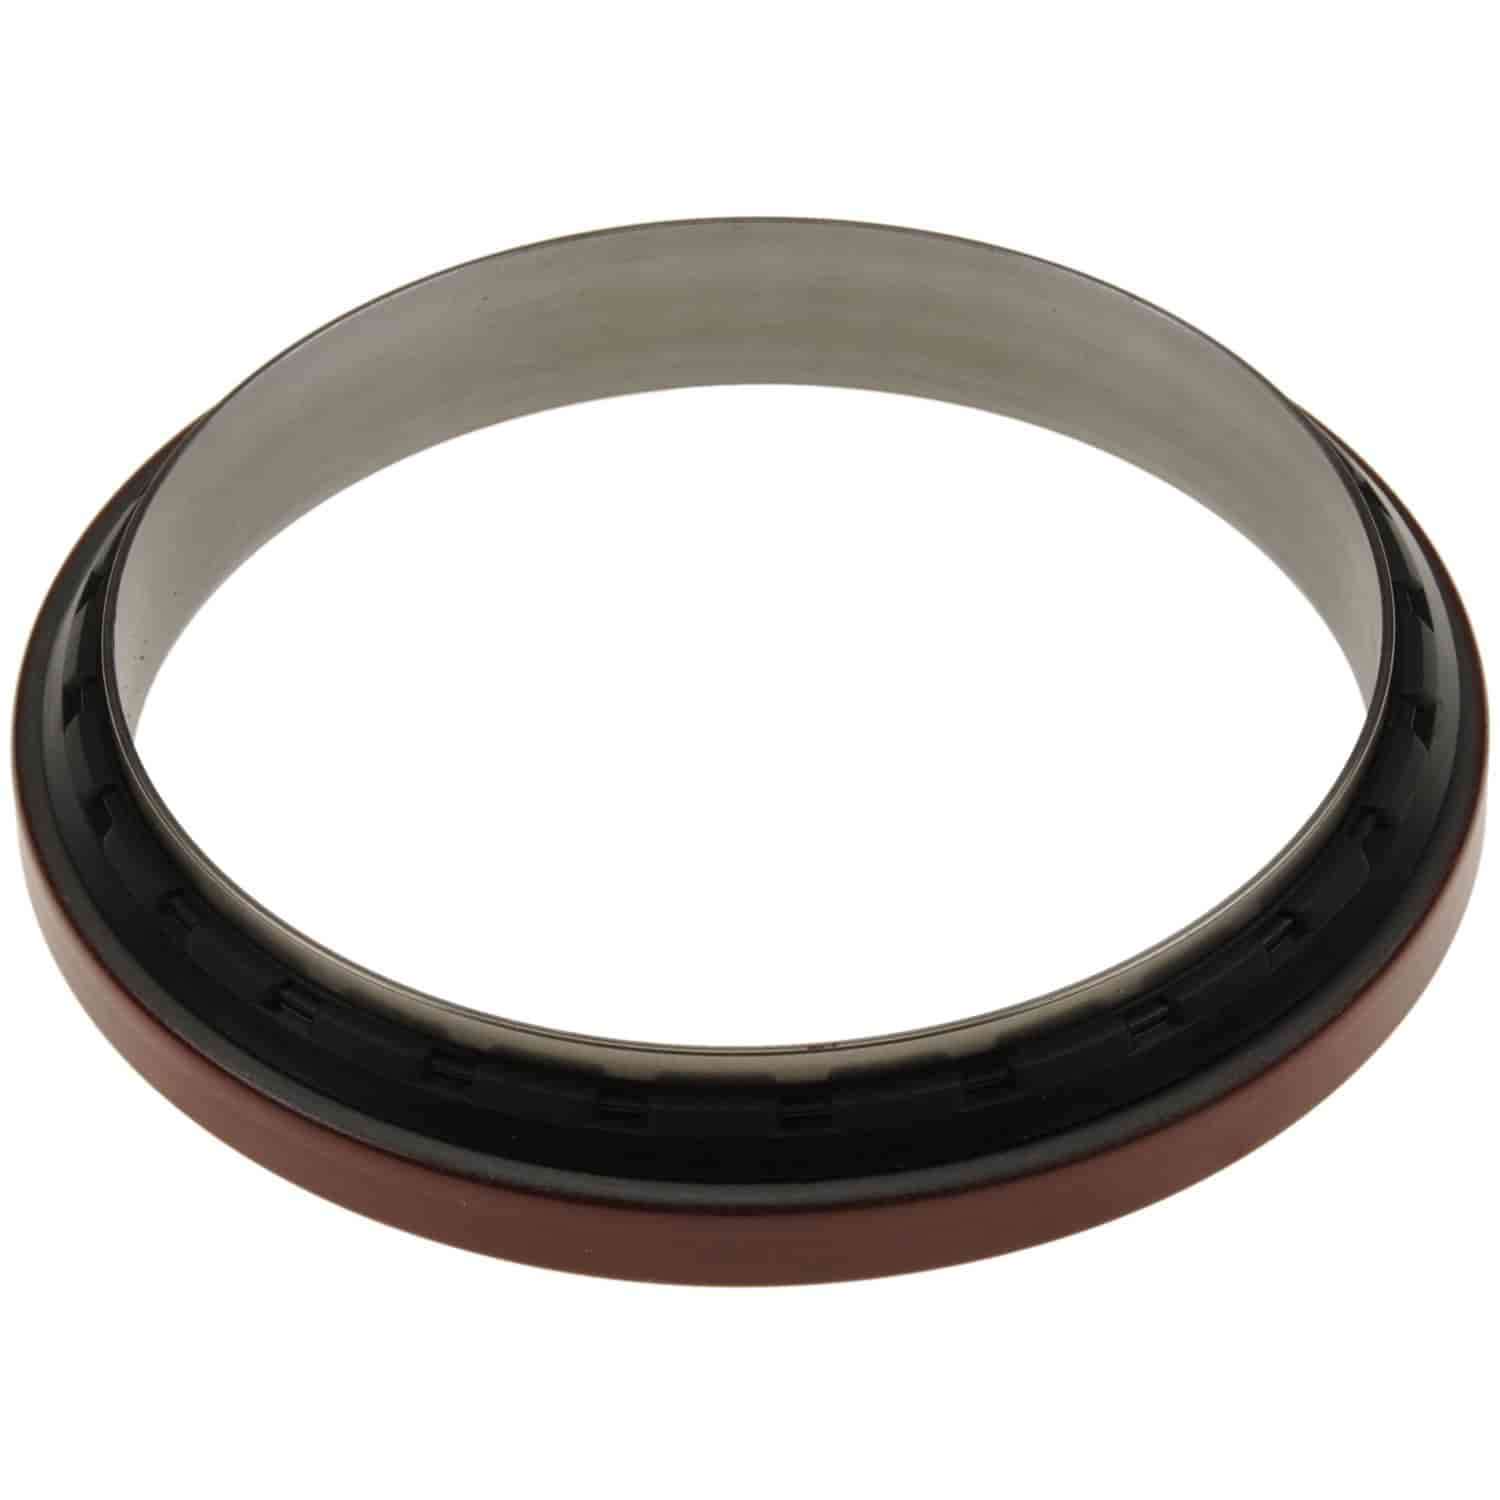 Clevite MAHLE Rear Main Seal And Sleeve International DT466E and DT466P  Rear Main Seal and Sleeve Assembly